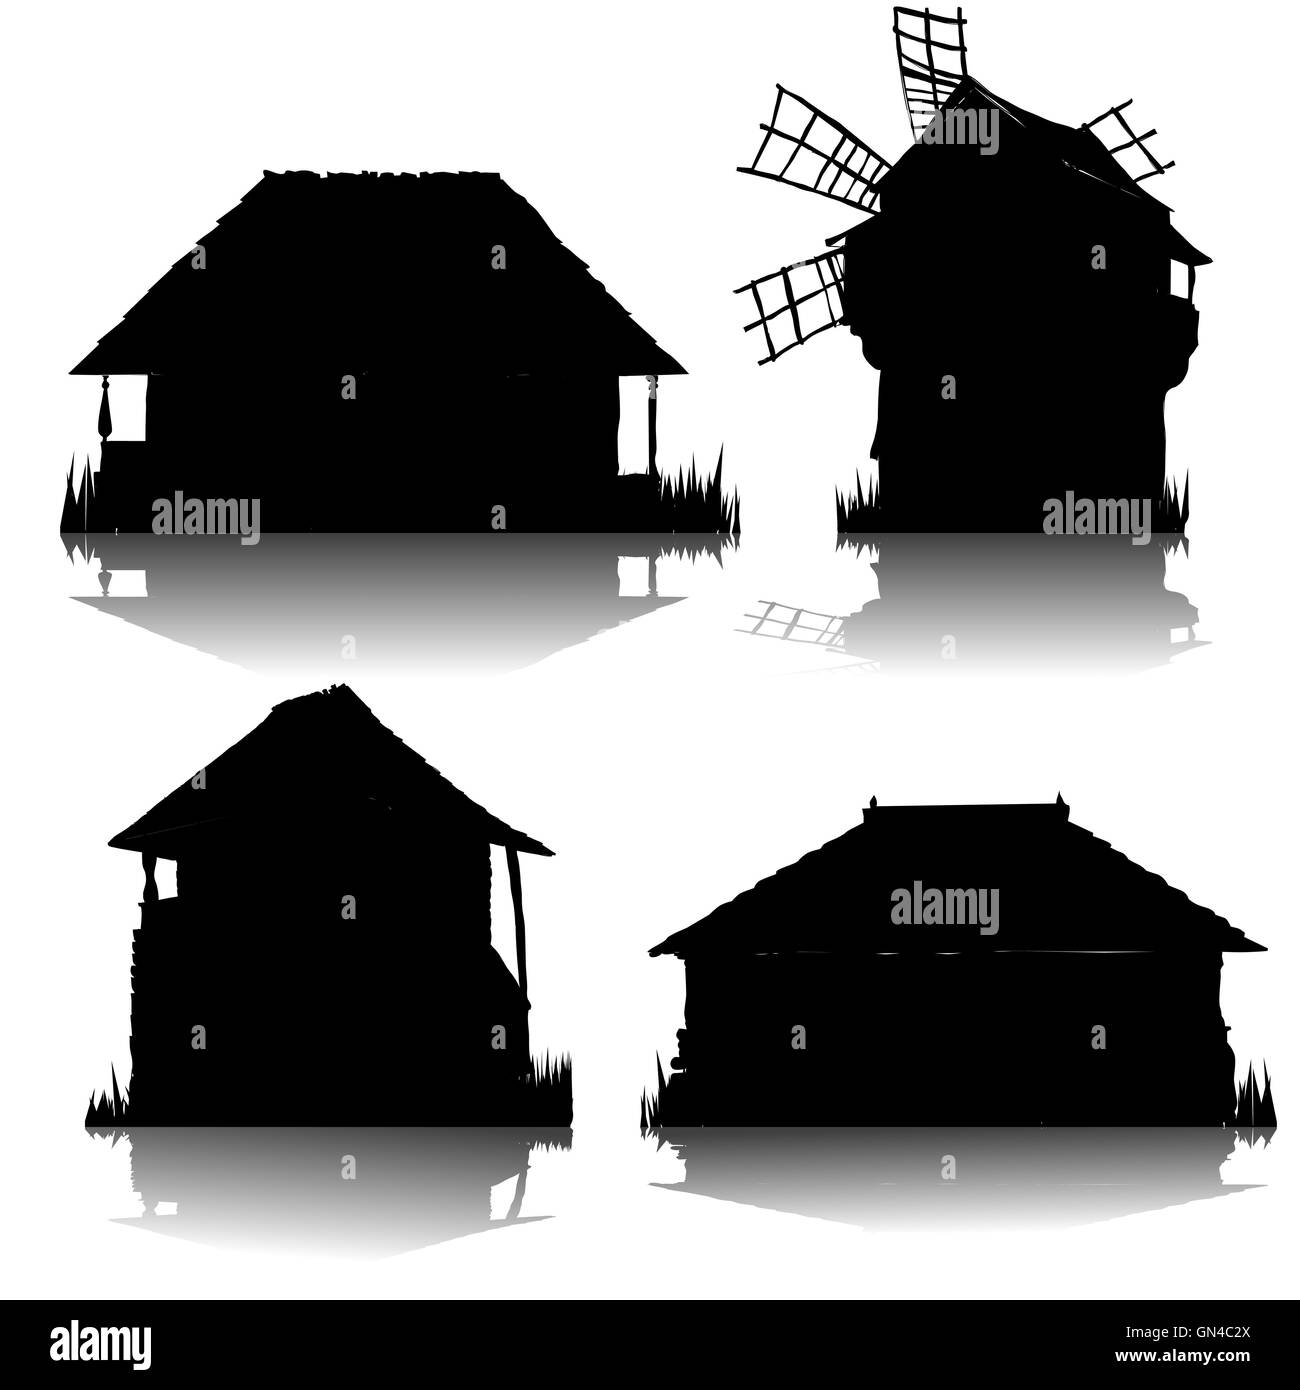 eco houses silhouettes - Stock Image